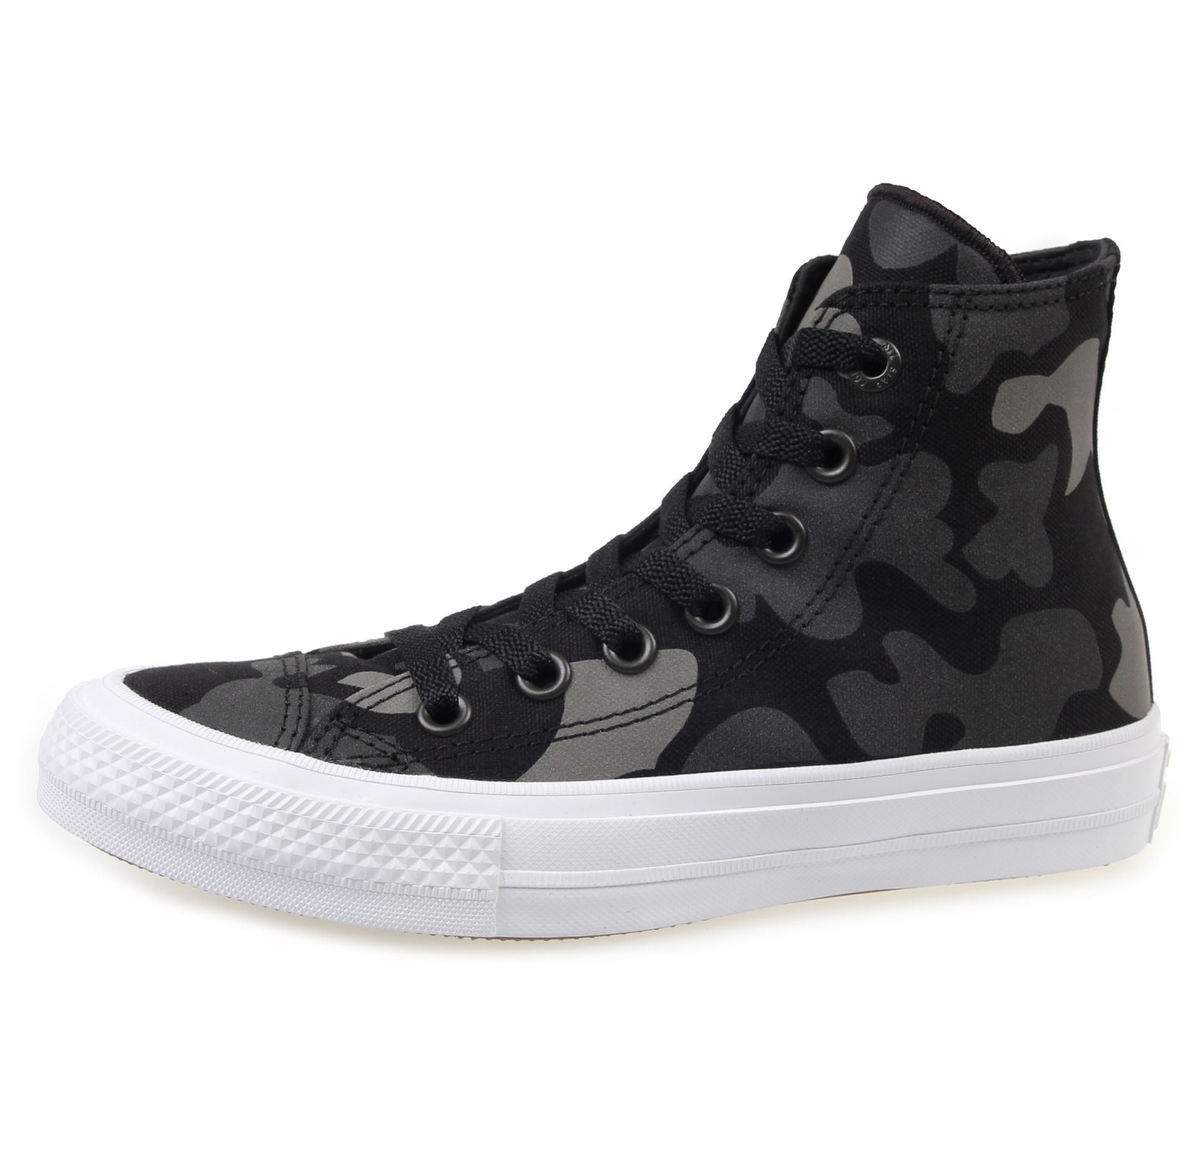 boty CONVERSE - Chuck Taylor All Star II - CHARCOAL/BLACK - C151157